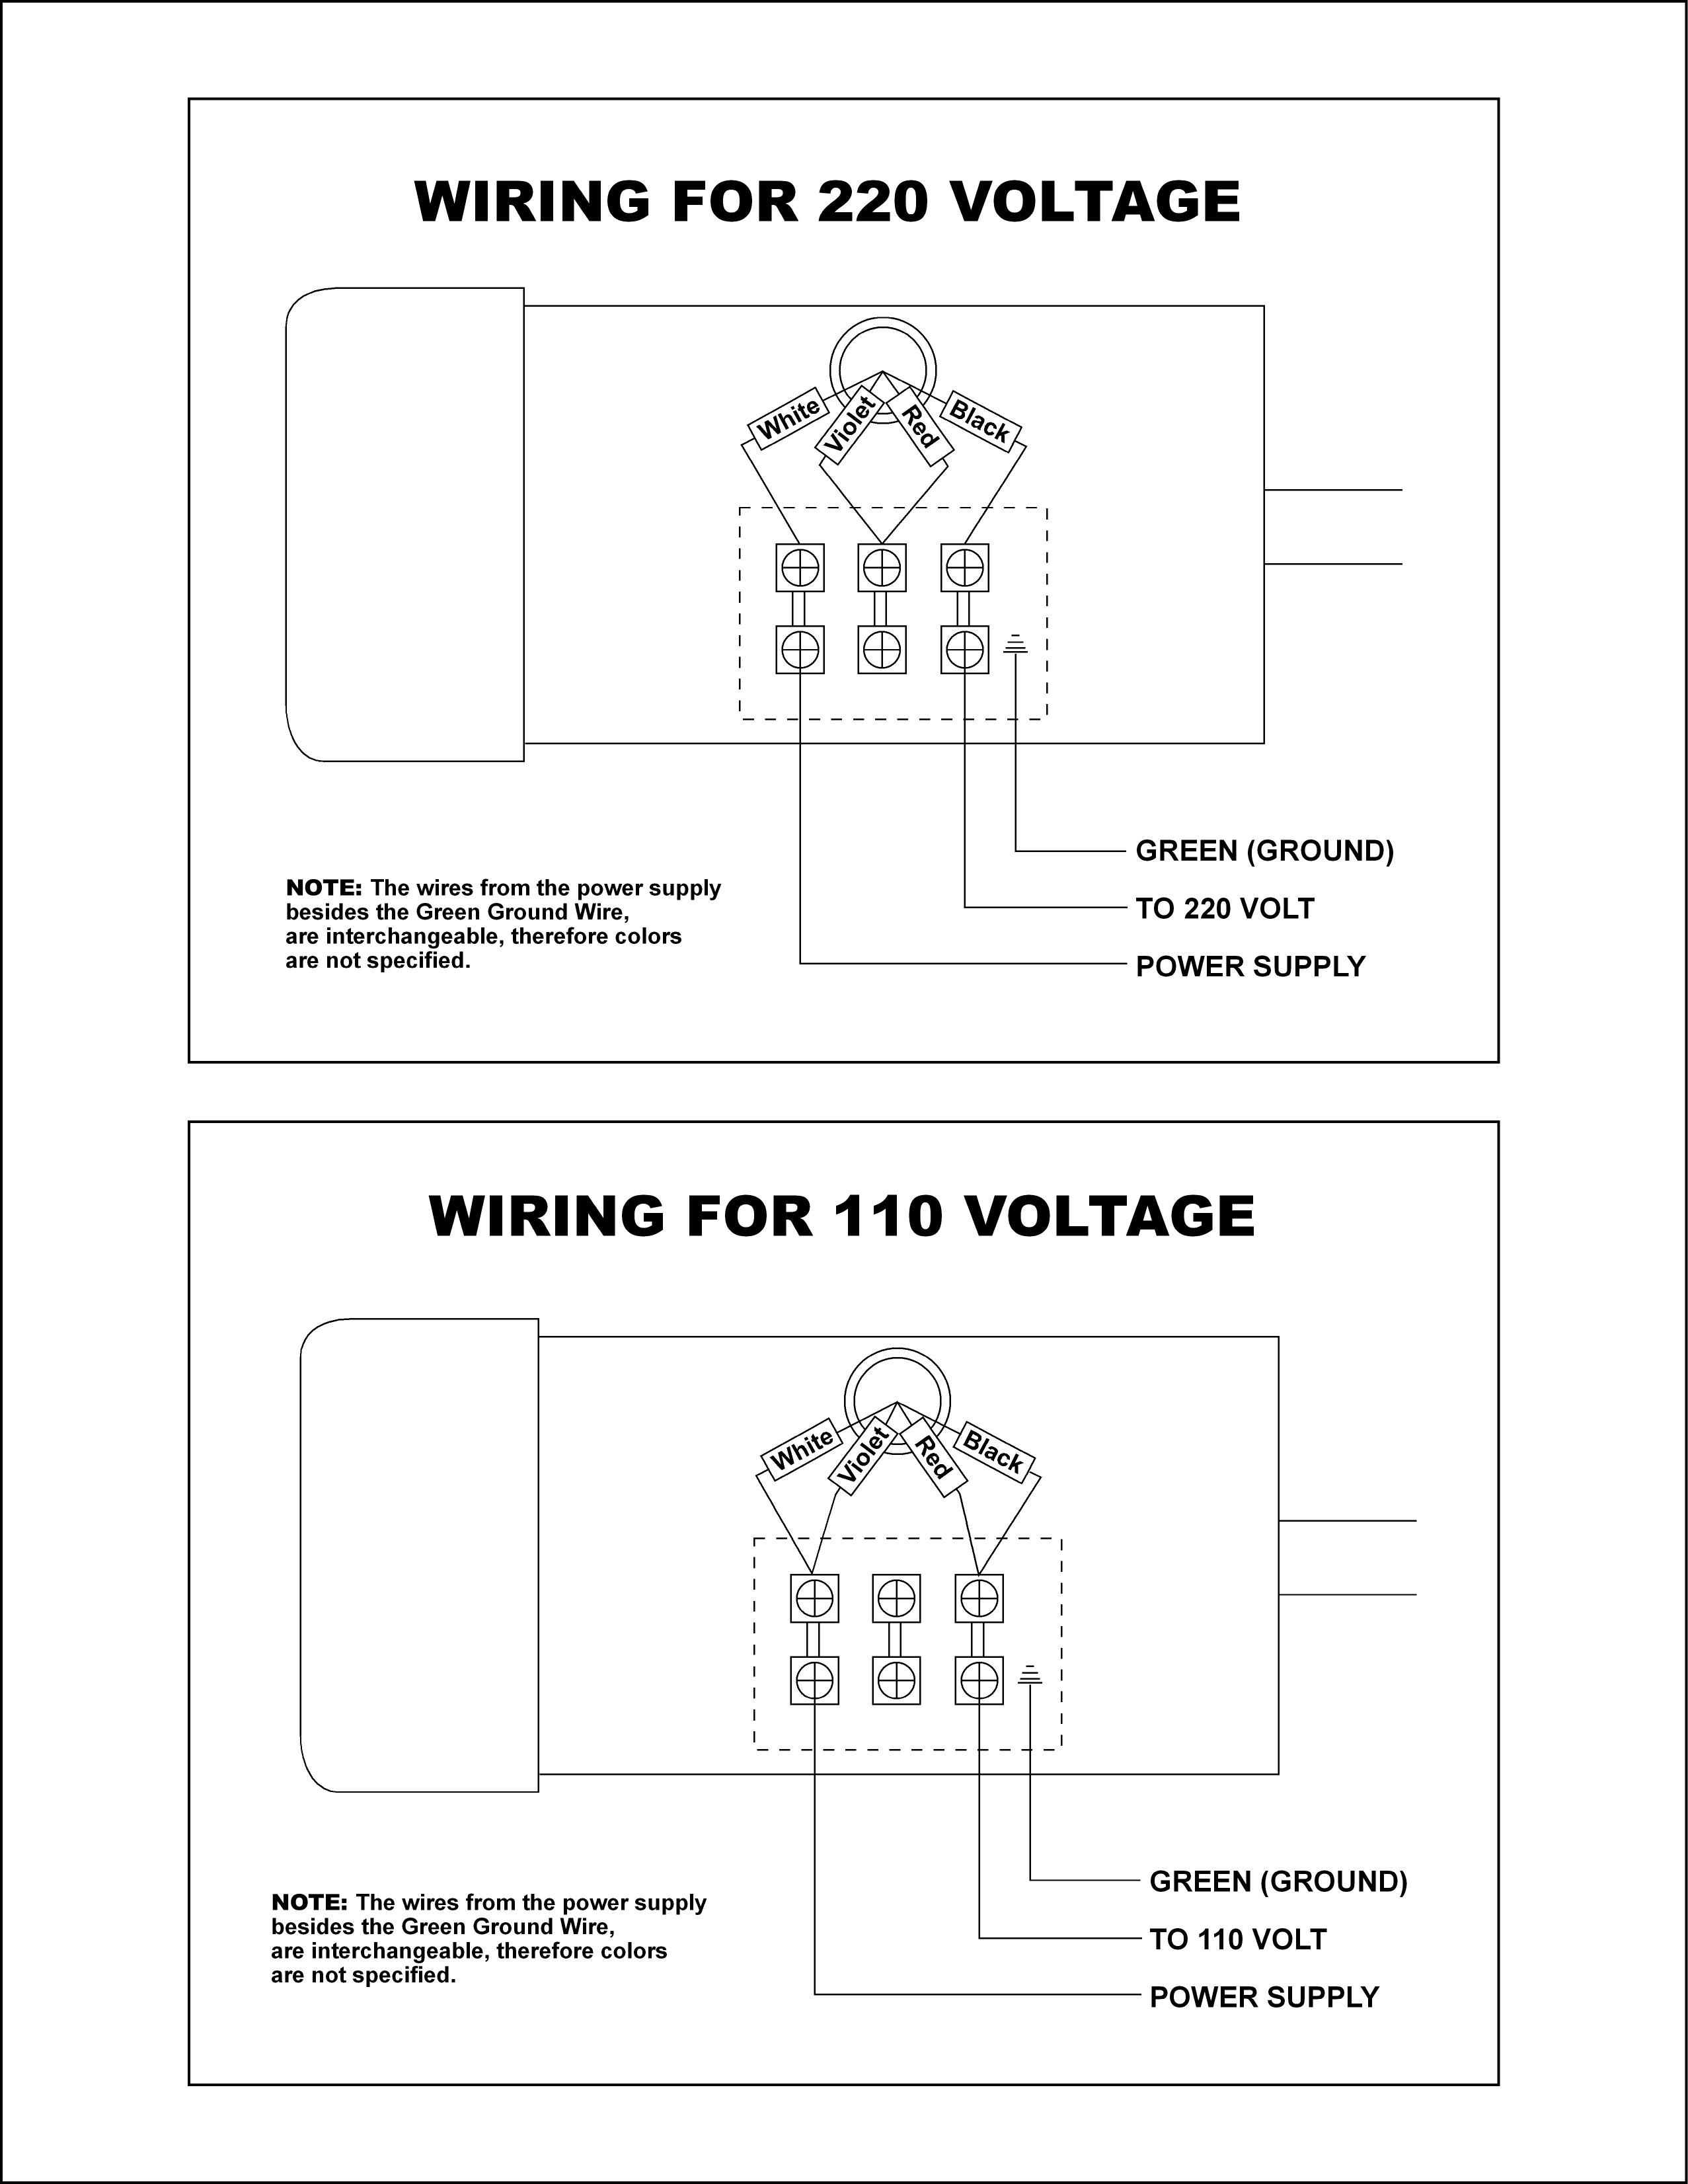 Fine 208 Single Phase Wiring Diagram Mold - Simple Wiring Diagram ...